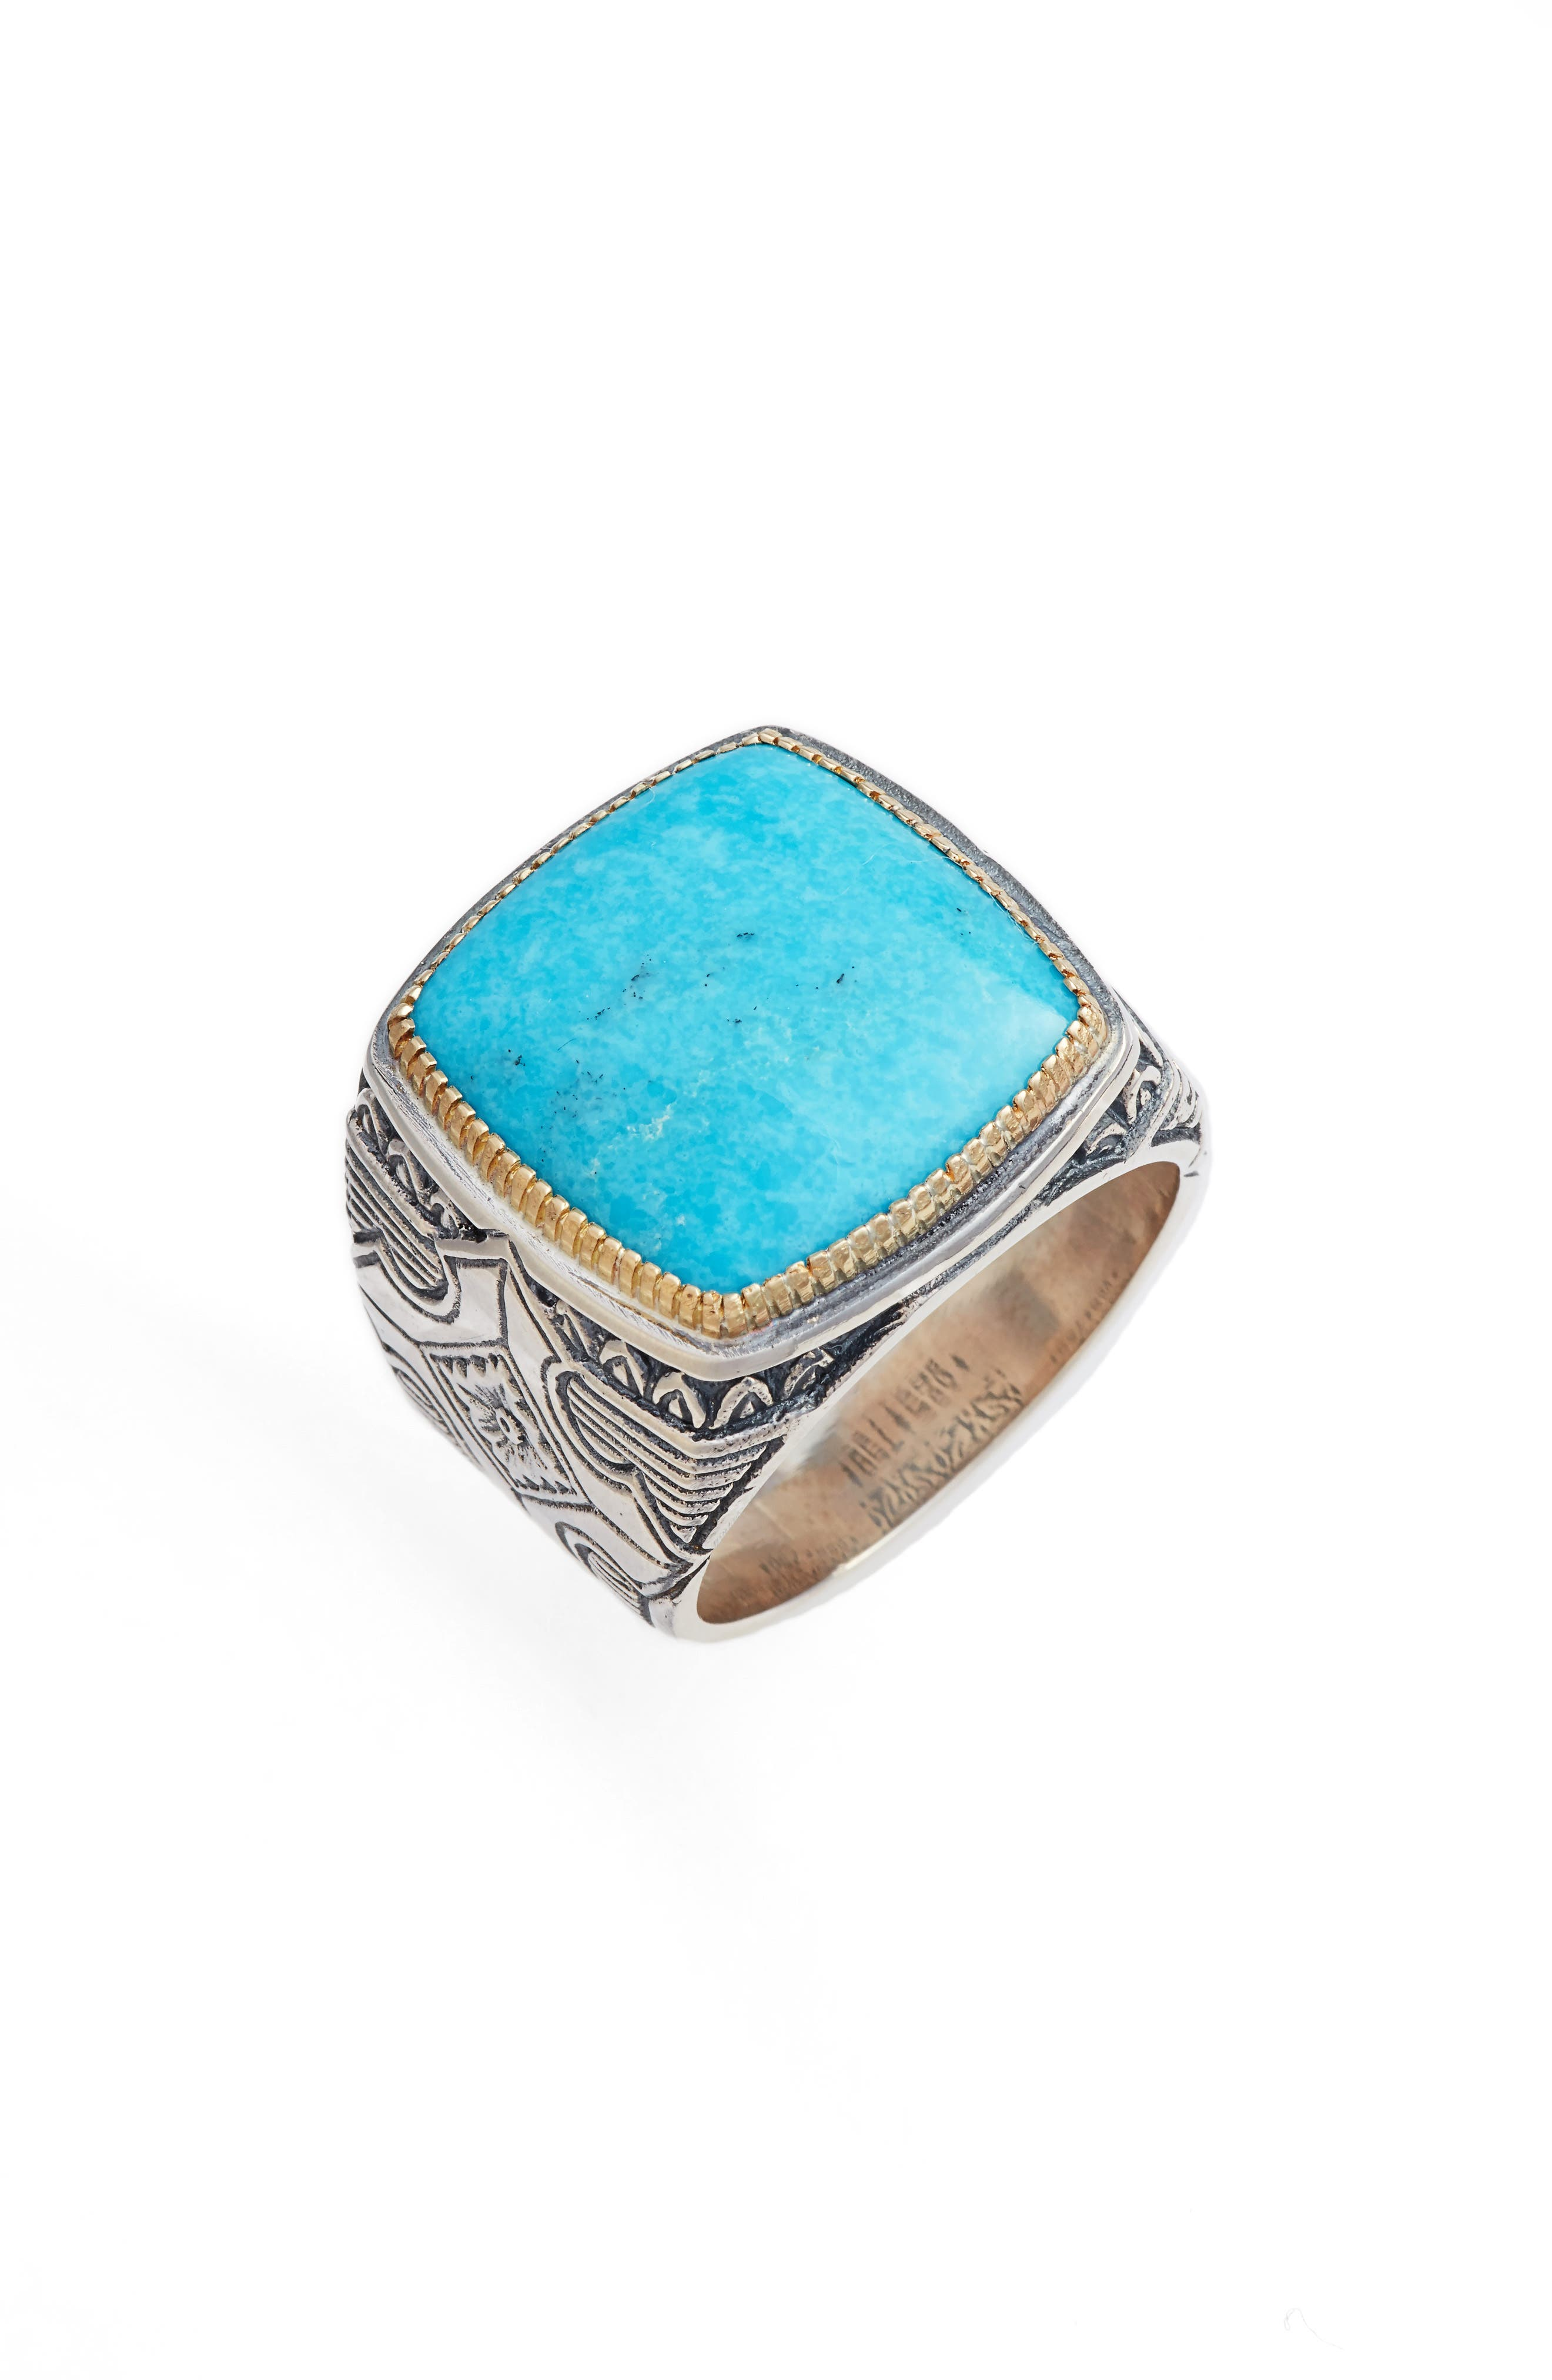 Heonos Square Turquoise Ring,                         Main,                         color, Silver/ Gold/ Turquoise